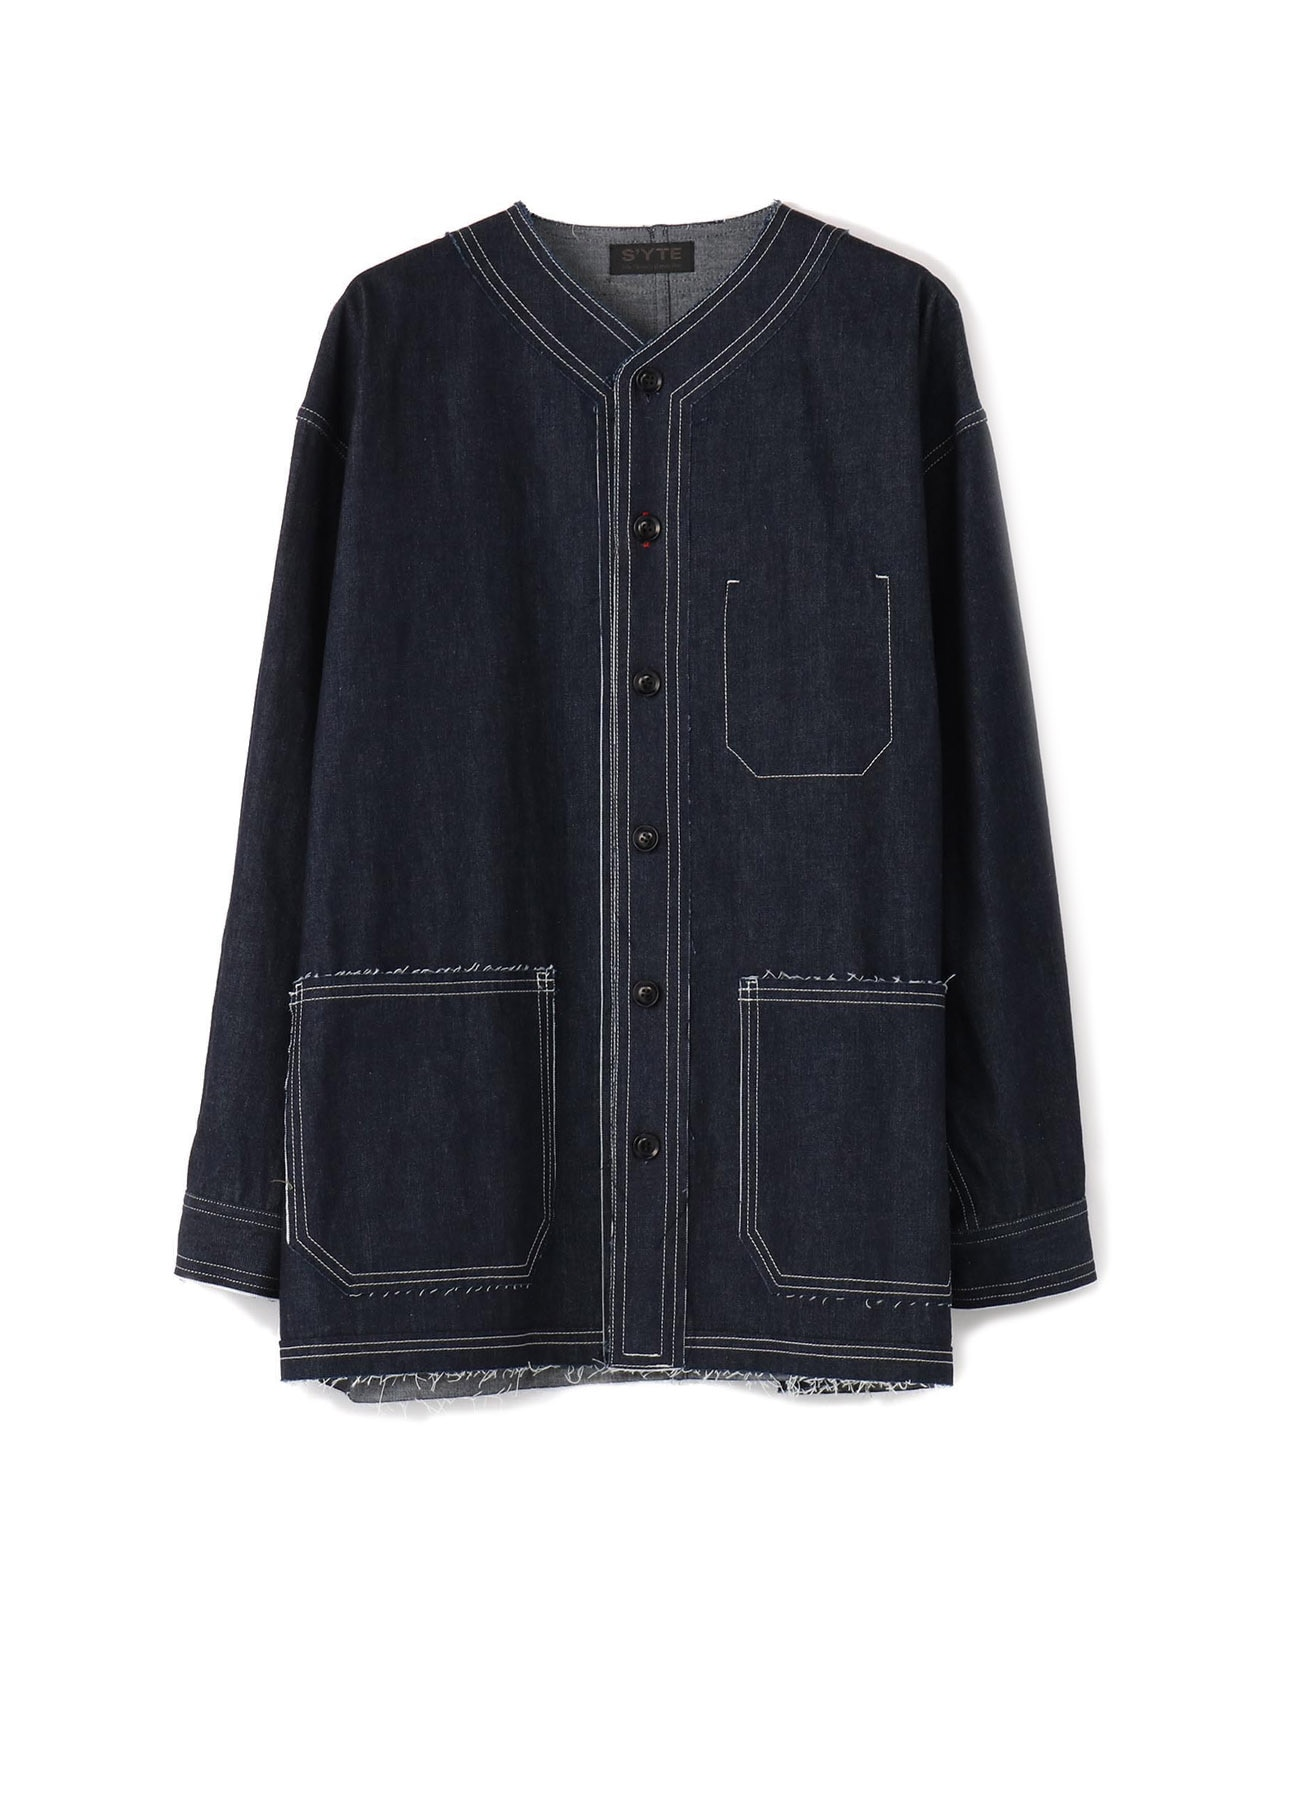 8oz Denim Collarless Coverall Jacket